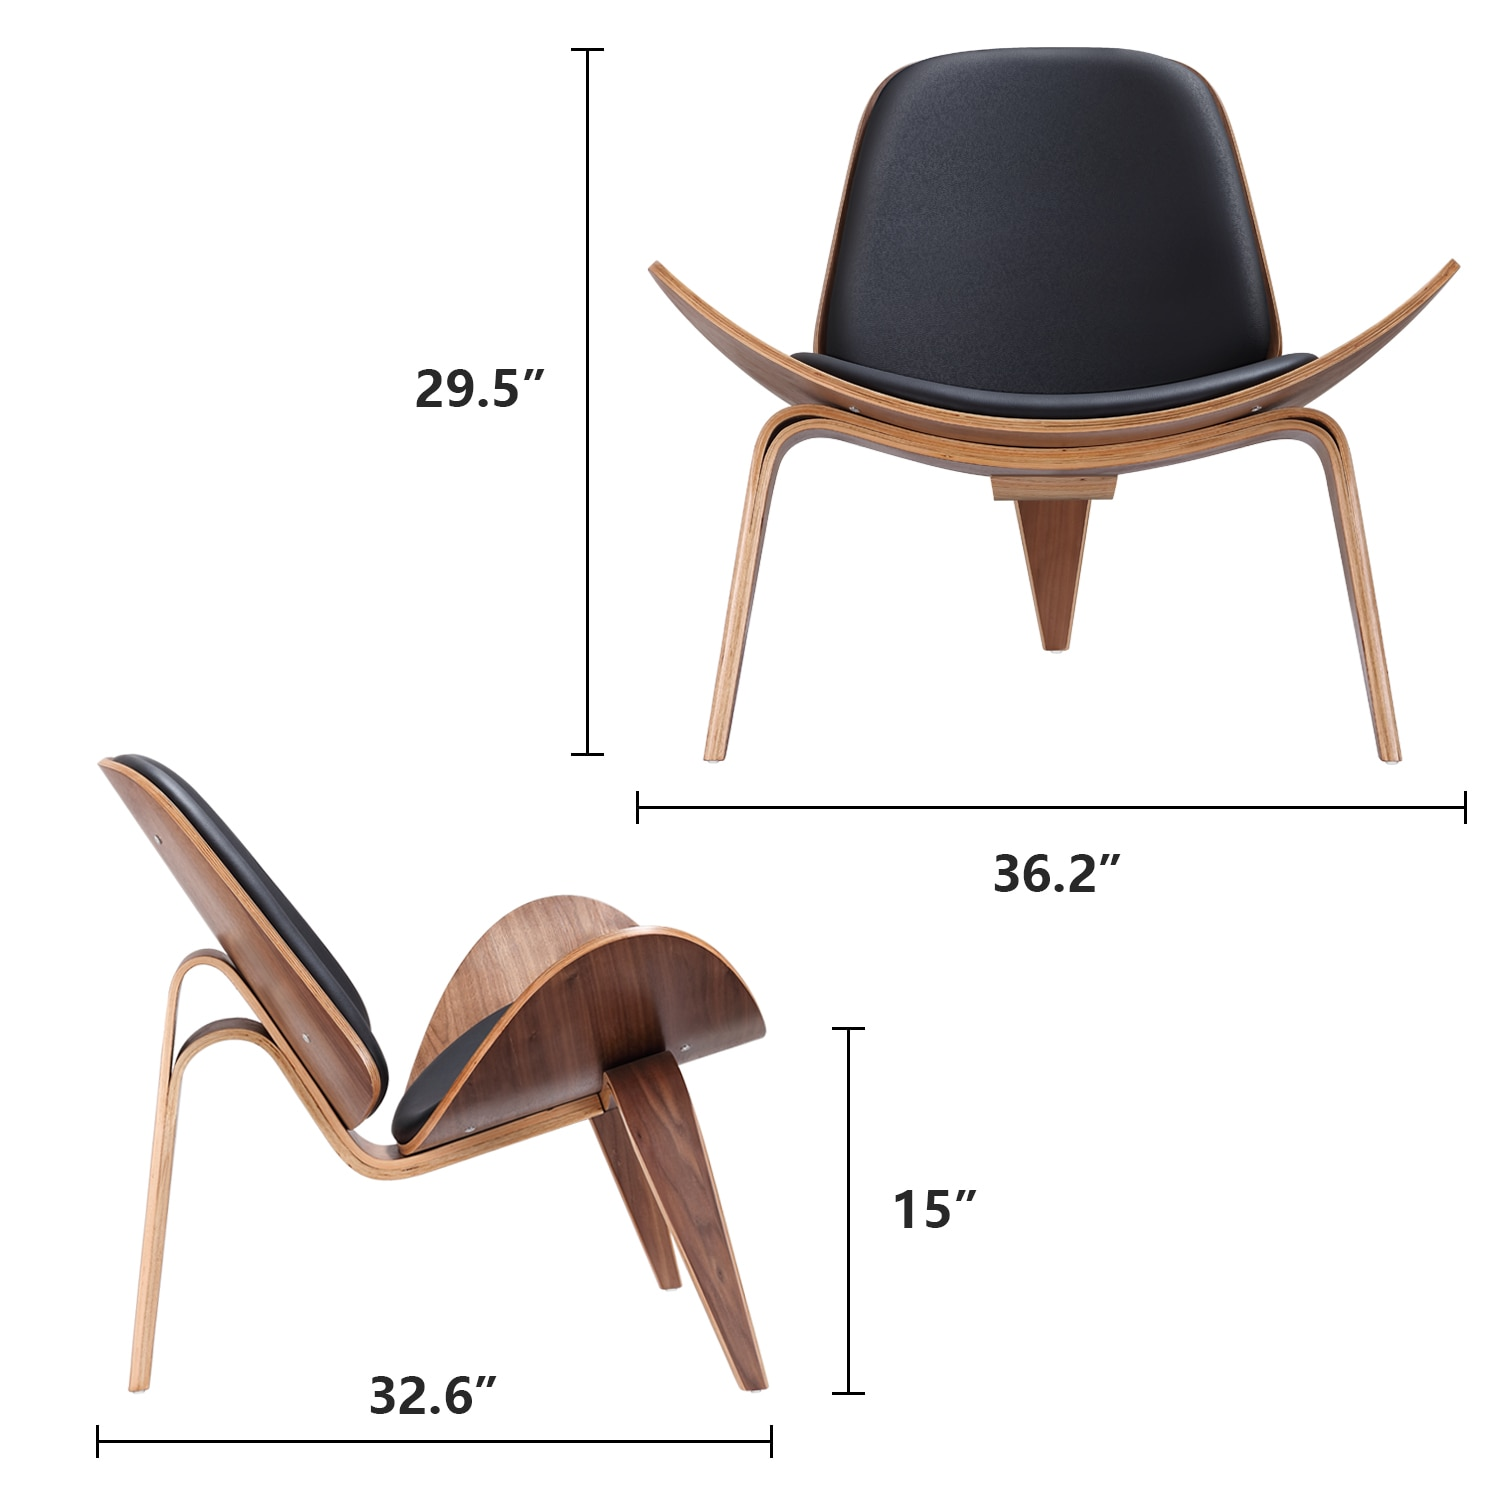 H8e8e1c2a5d884df6ab8b45bff1819801f - Design Furniture Bentwood Chair Hands Wegner Replica Lounge Chair with PU Leather Seat Comfort Cushion Coffee Chair Office Chair